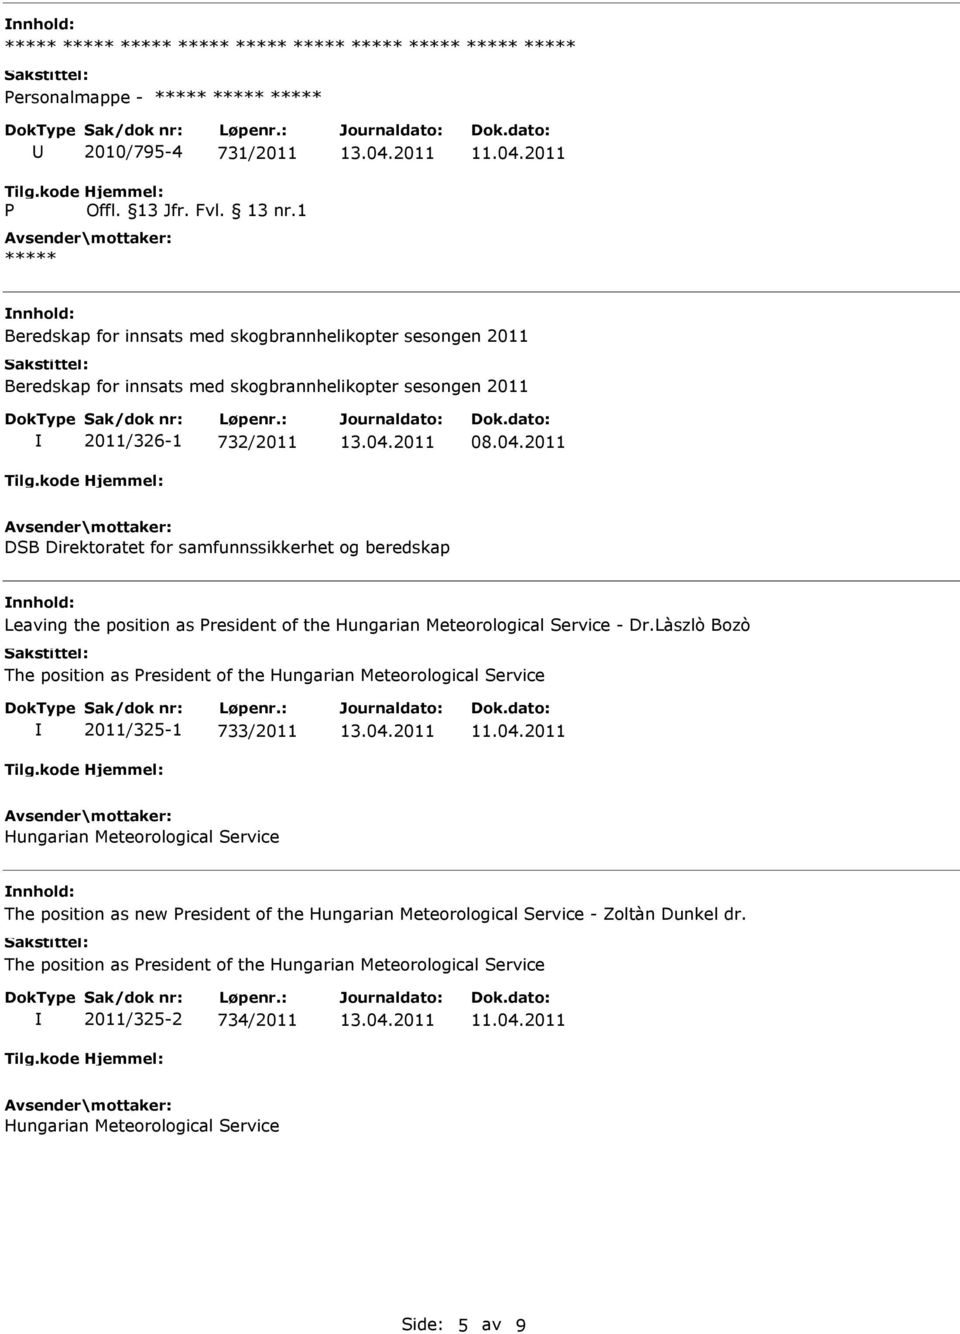 Làszlò Bozò The position as resident of the Hungarian Meteorological Service 2011/325-1 733/2011 Hungarian Meteorological Service The position as new resident of